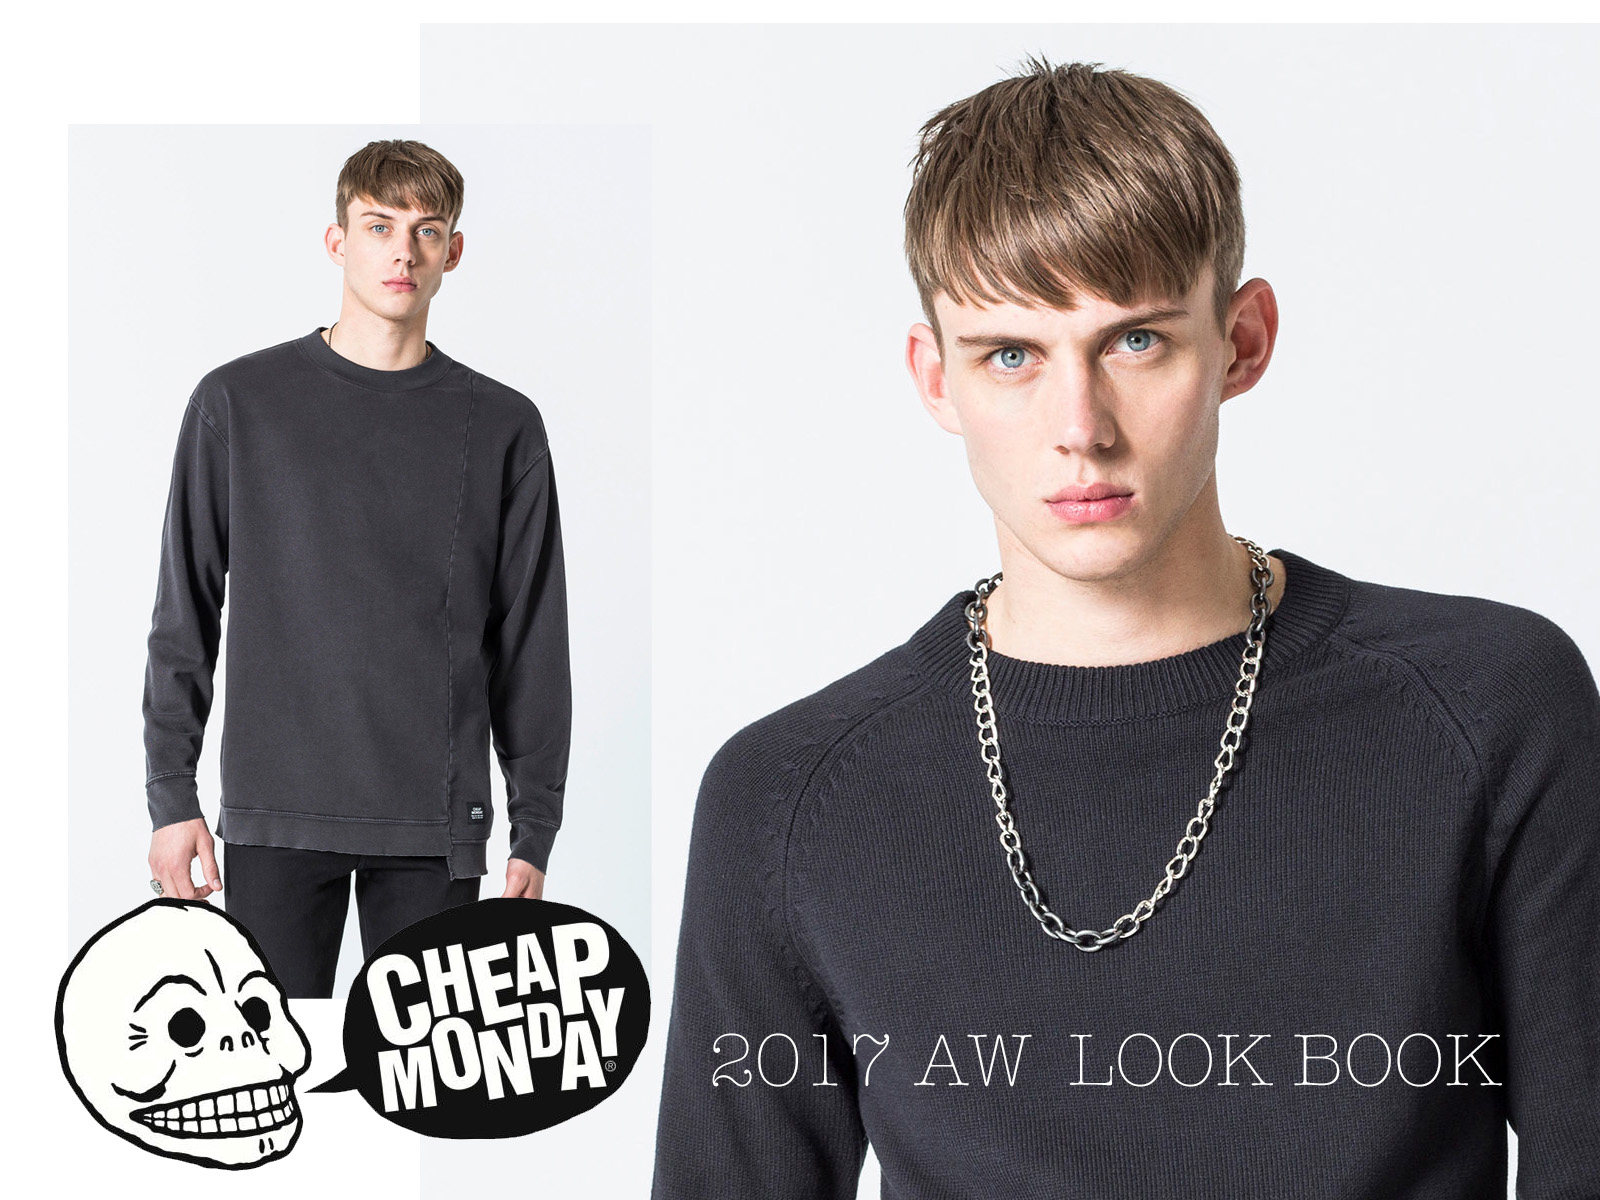 CHEAP MONDAY 2017 AW LOOK BOOK